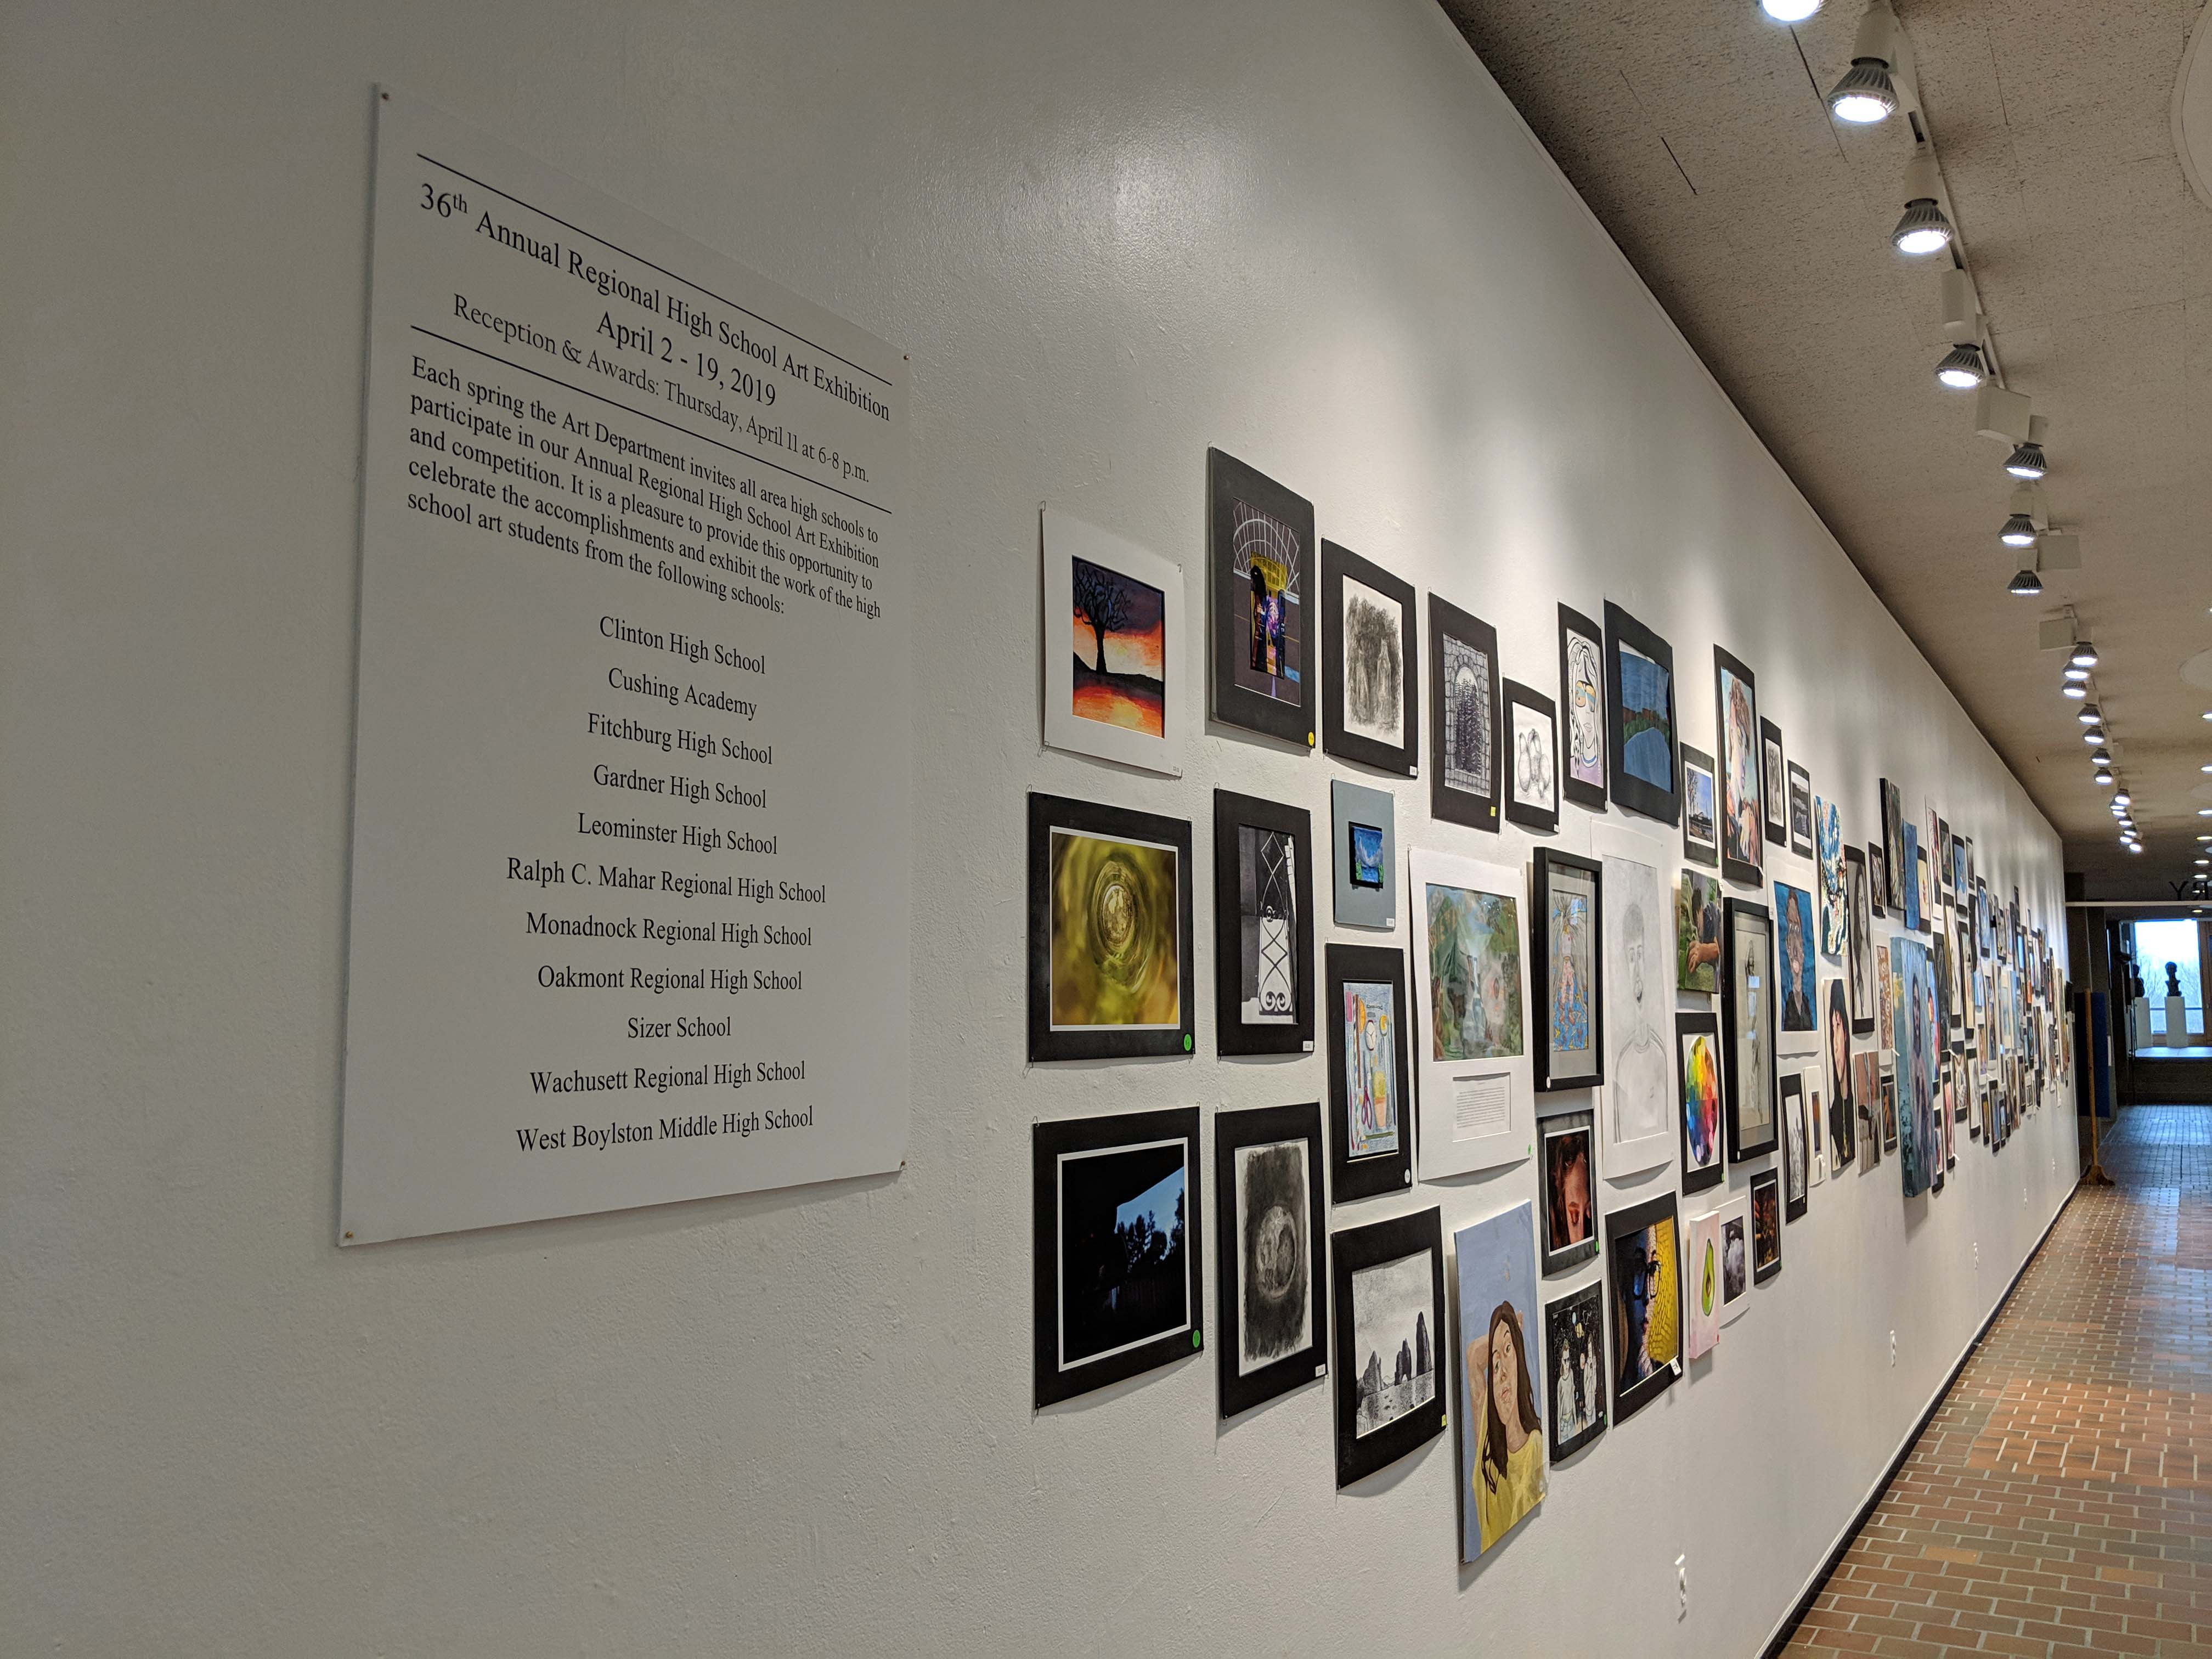 A wall covered with paintings is shown.